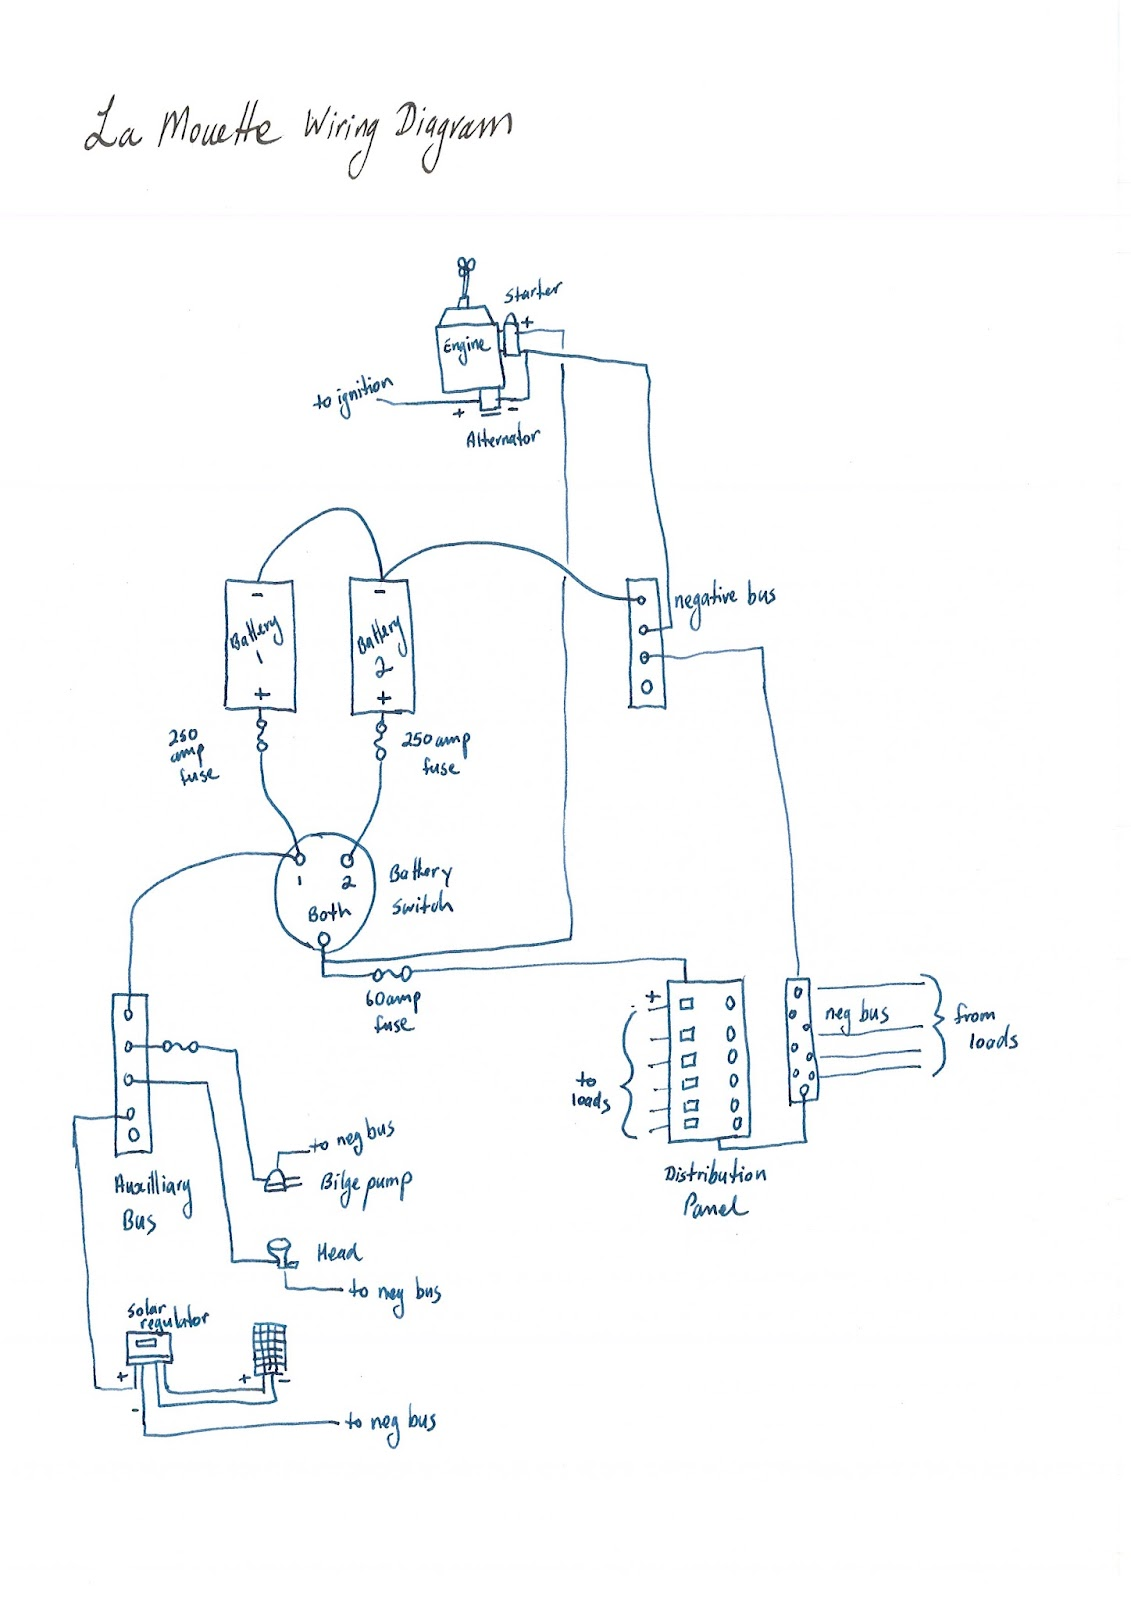 Wiring Diagram For Re Wire Google Groups Straight Cool This Is The That I Have Drawn Up And Using Once It All Done Think Might Pay Someone To Audit My Electrical System Make Sure